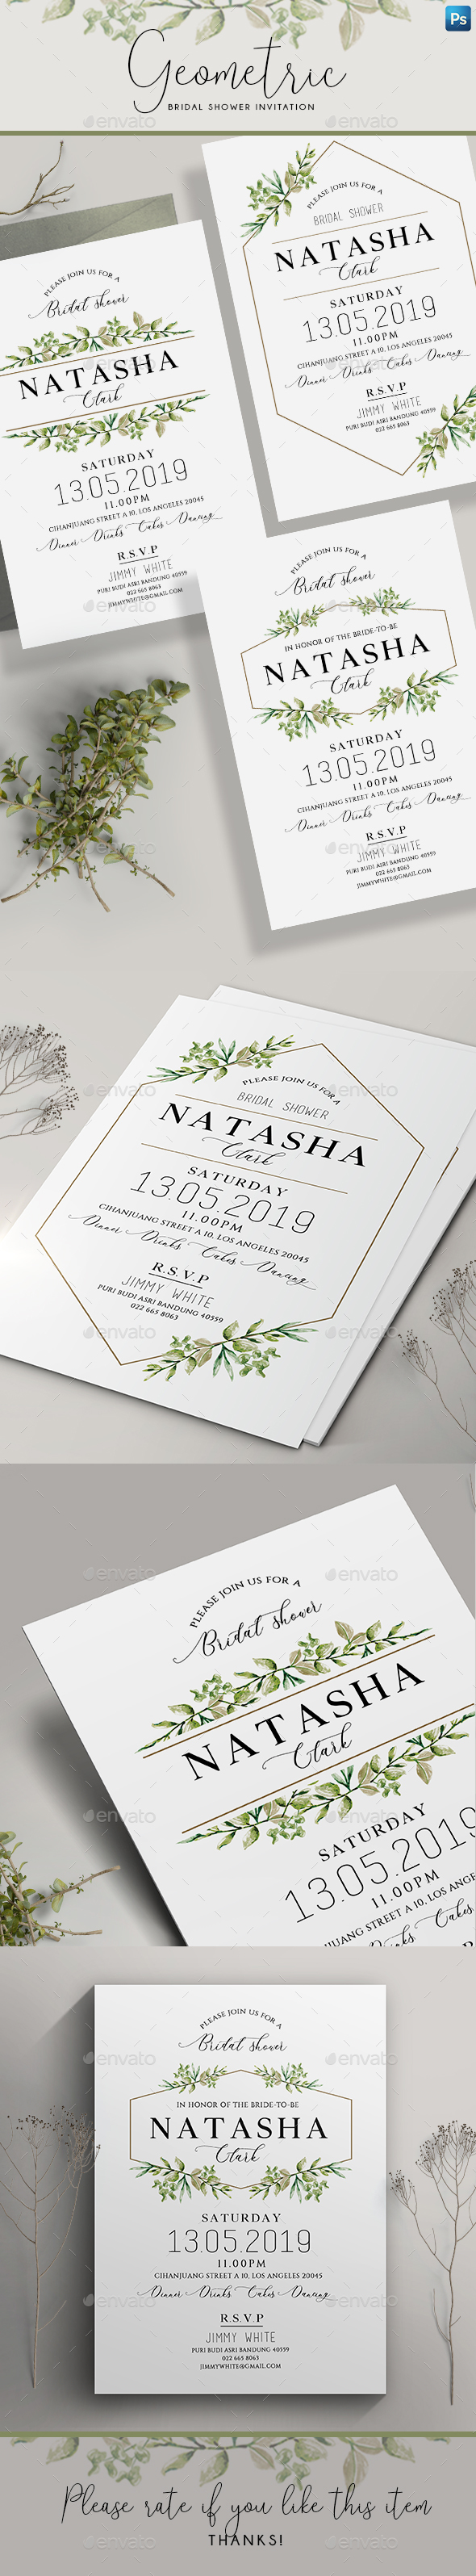 Wedding Card Designs & Templates from GraphicRiver